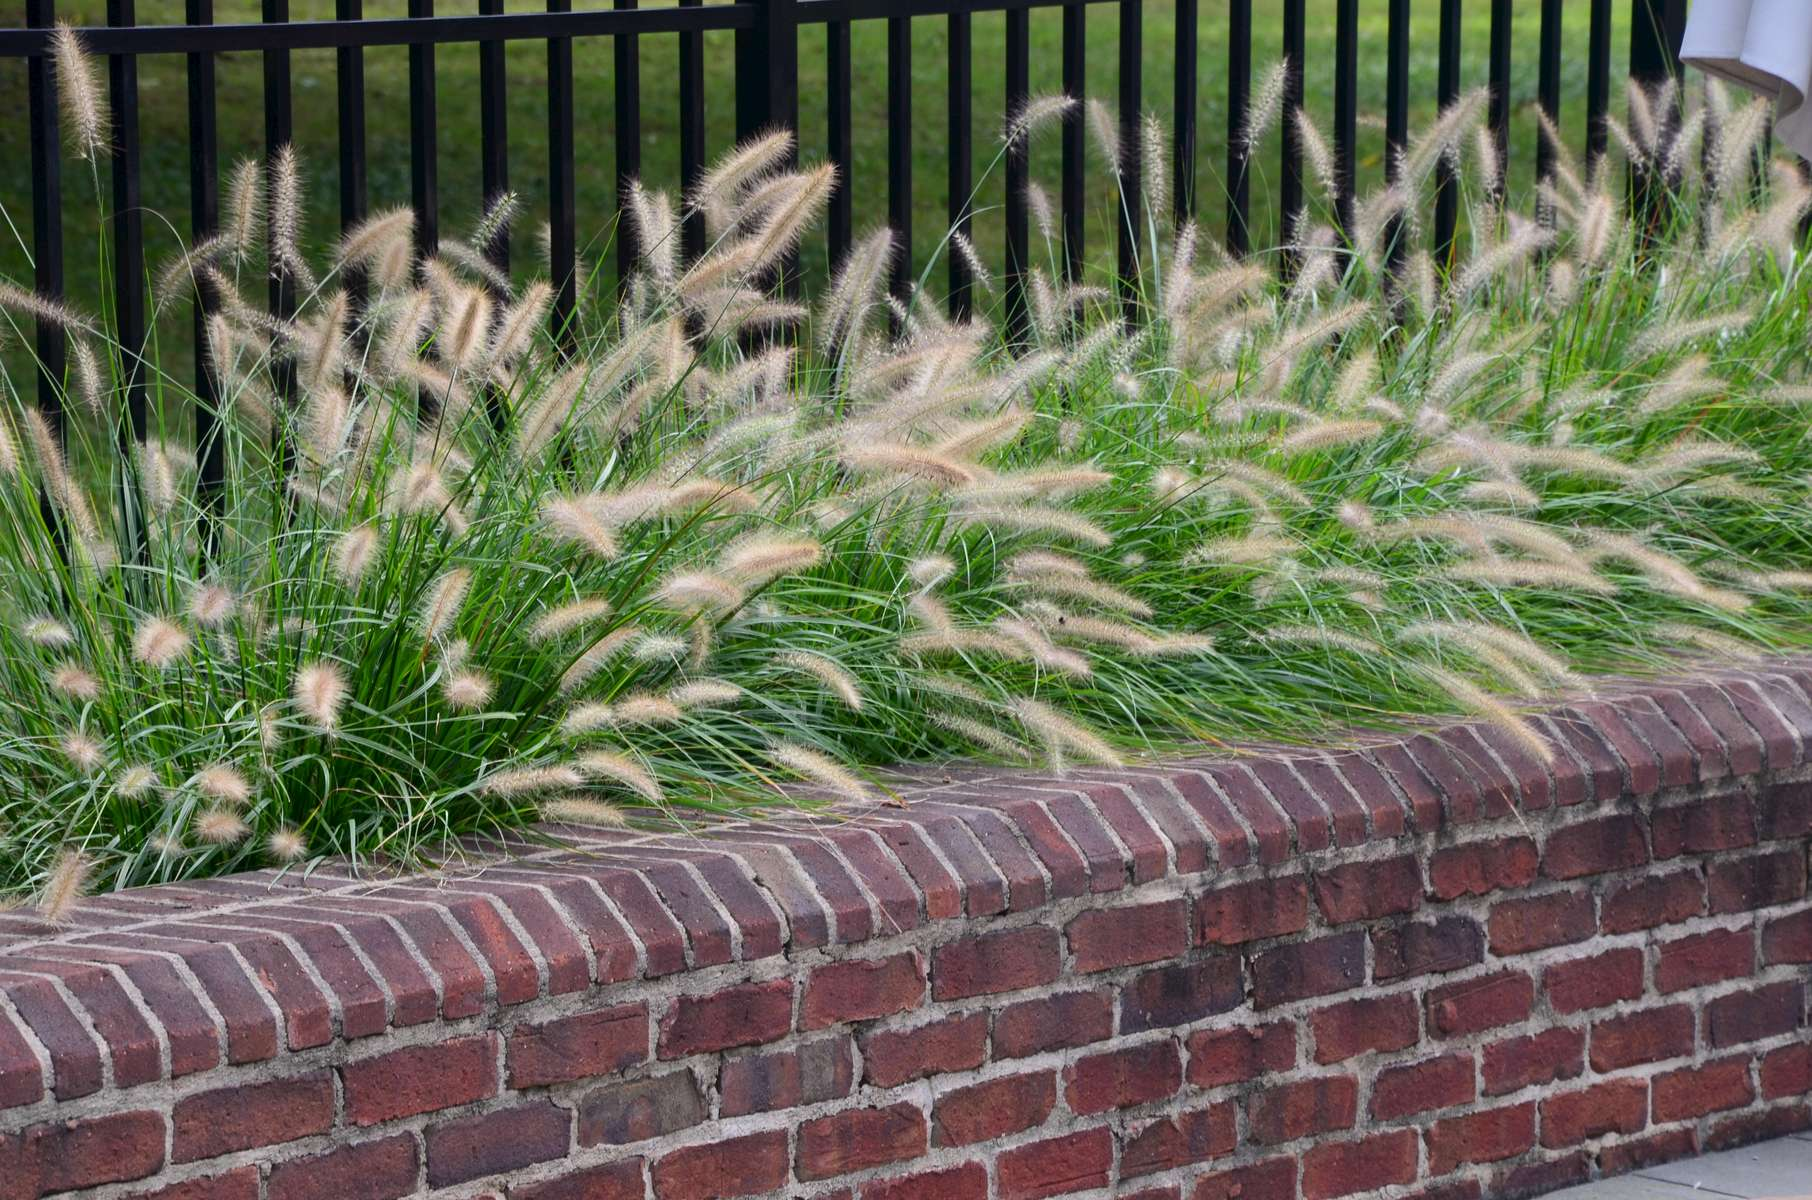 Ornamental grasses add seasonal drama and soften the lines of the raised brick beds within the pool surround.